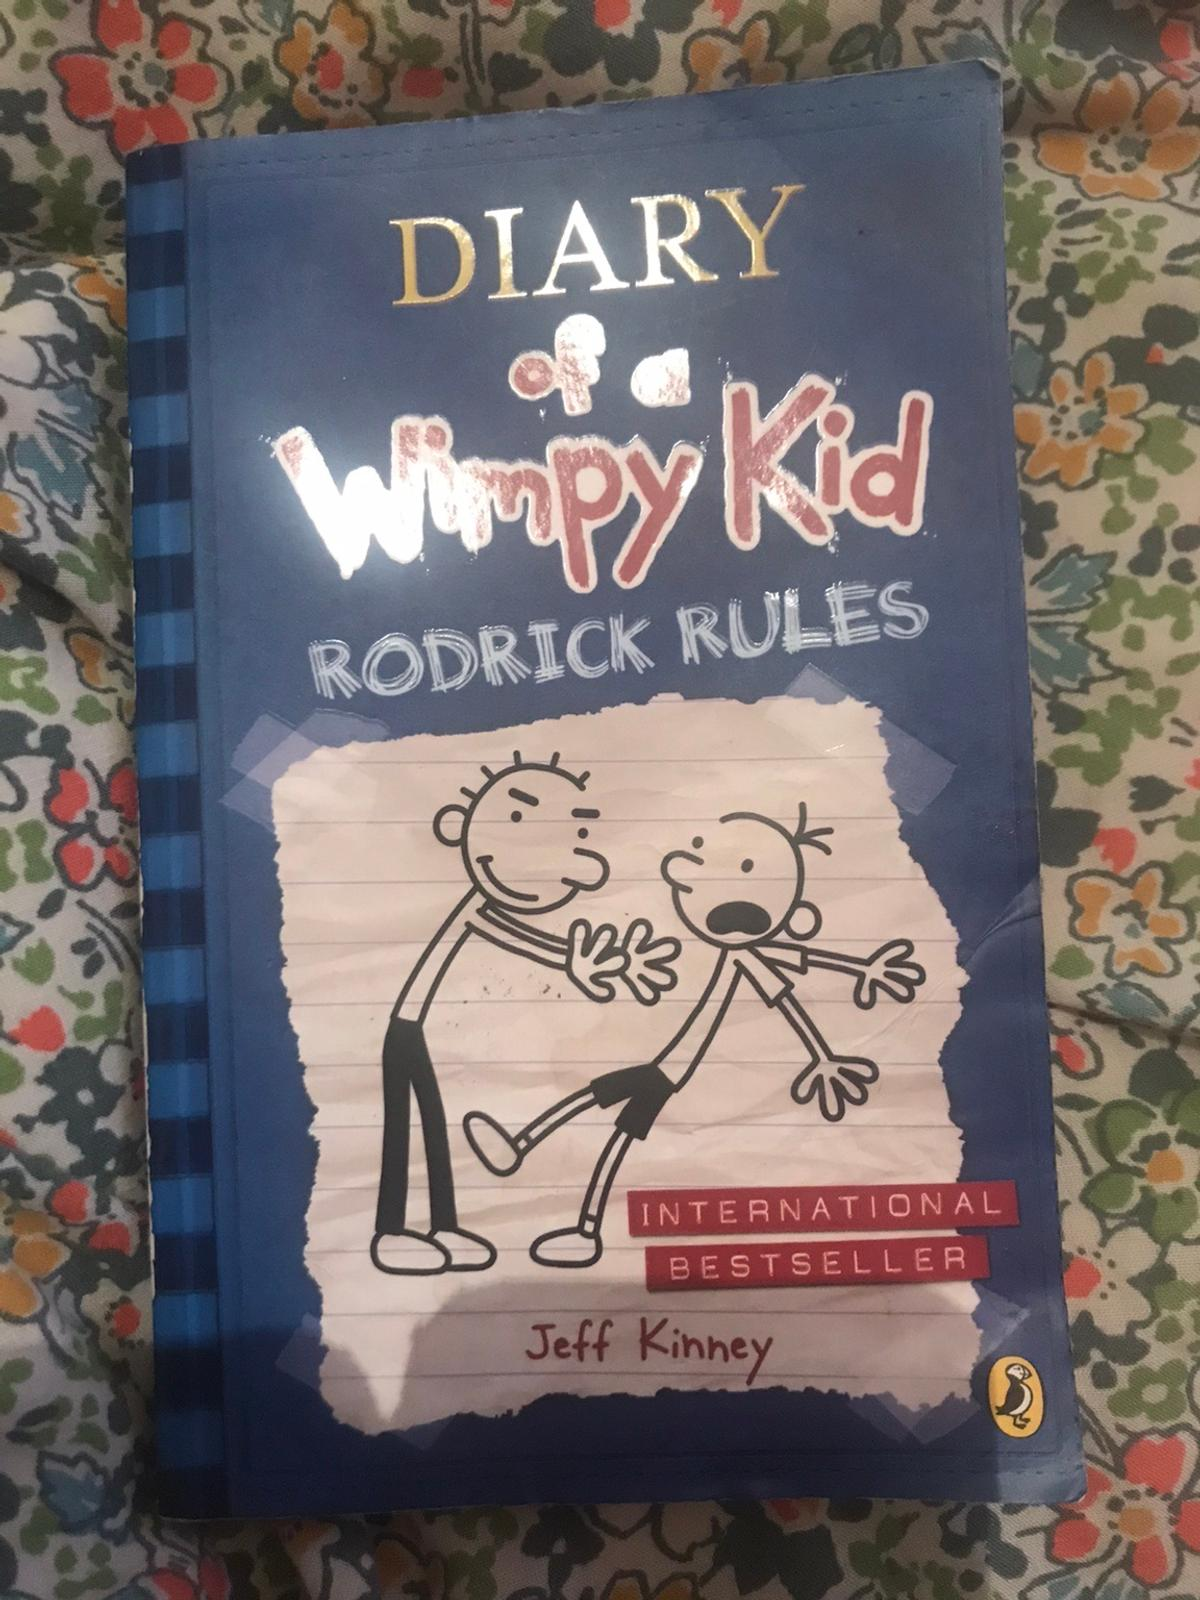 Children's book Diary of a Wimpy Kid, Roderick Rules - Jeff Kinney Used, good condition